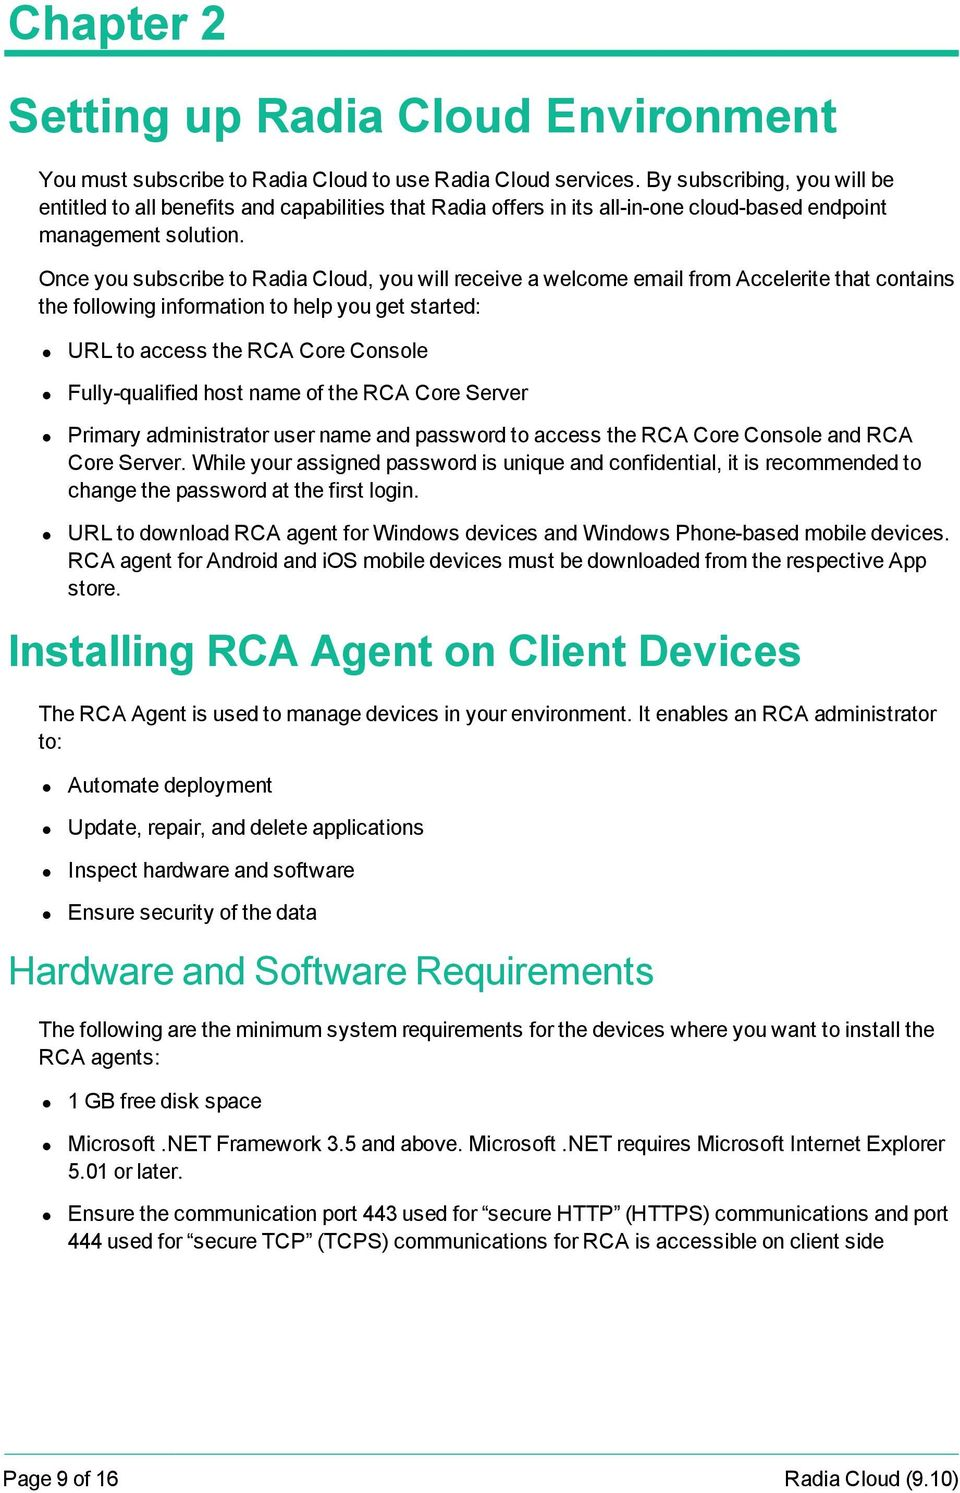 Once you subscribe to Radia Cloud, you will receive a welcome email from Accelerite that contains the following information to help you get started: URL to access the RCA Core Console Fully-qualified